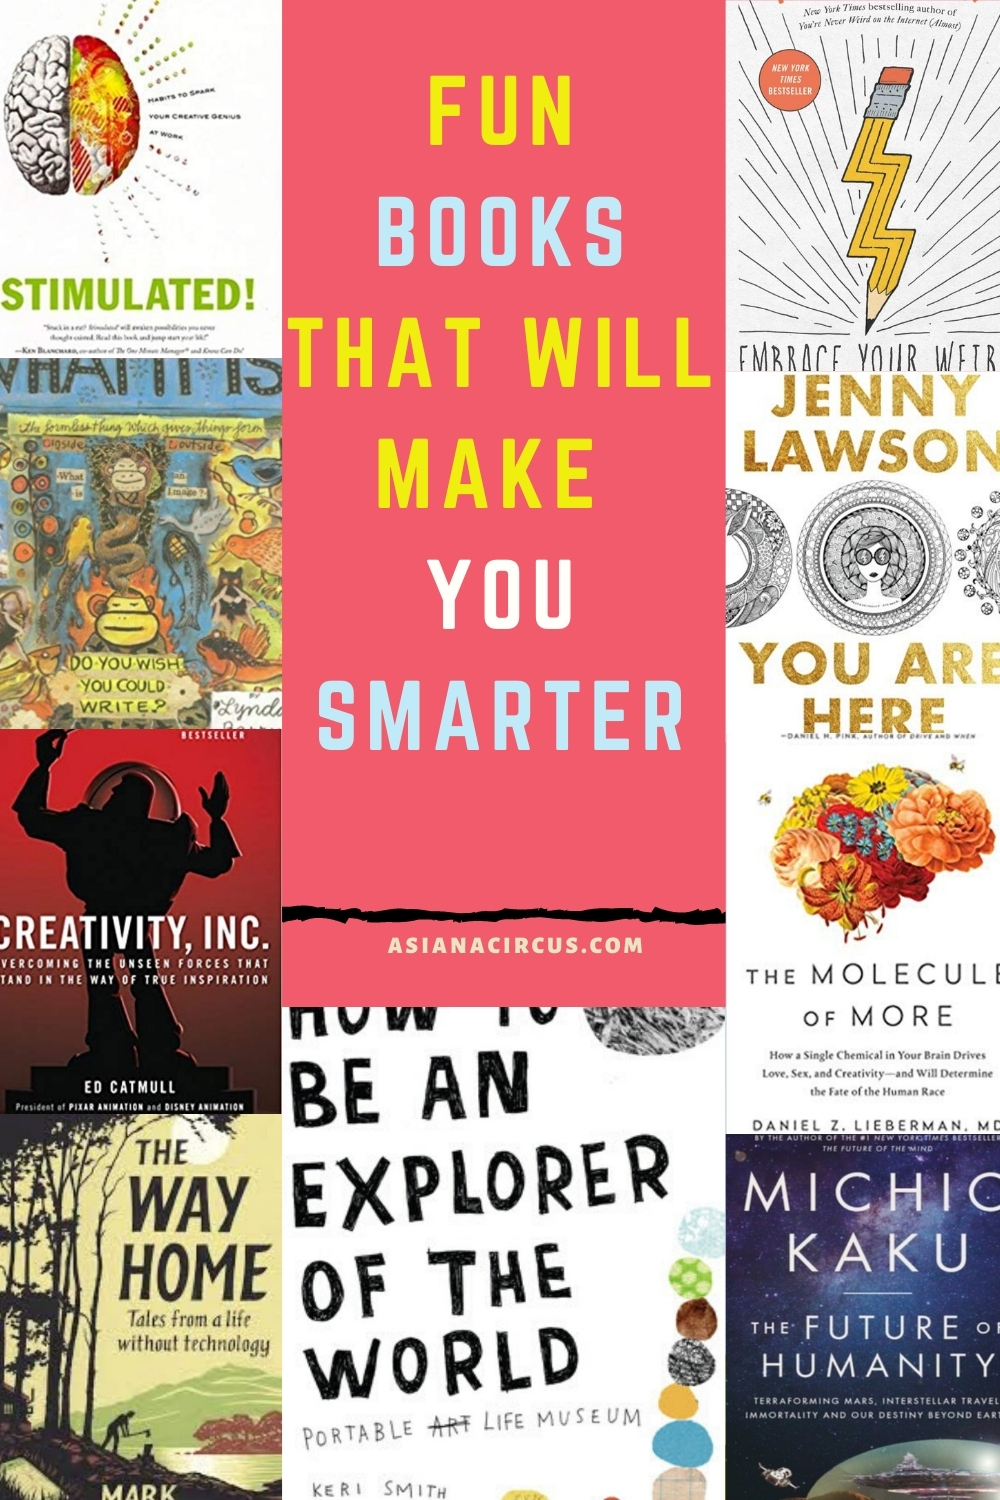 Books on mindfulness that will make you think